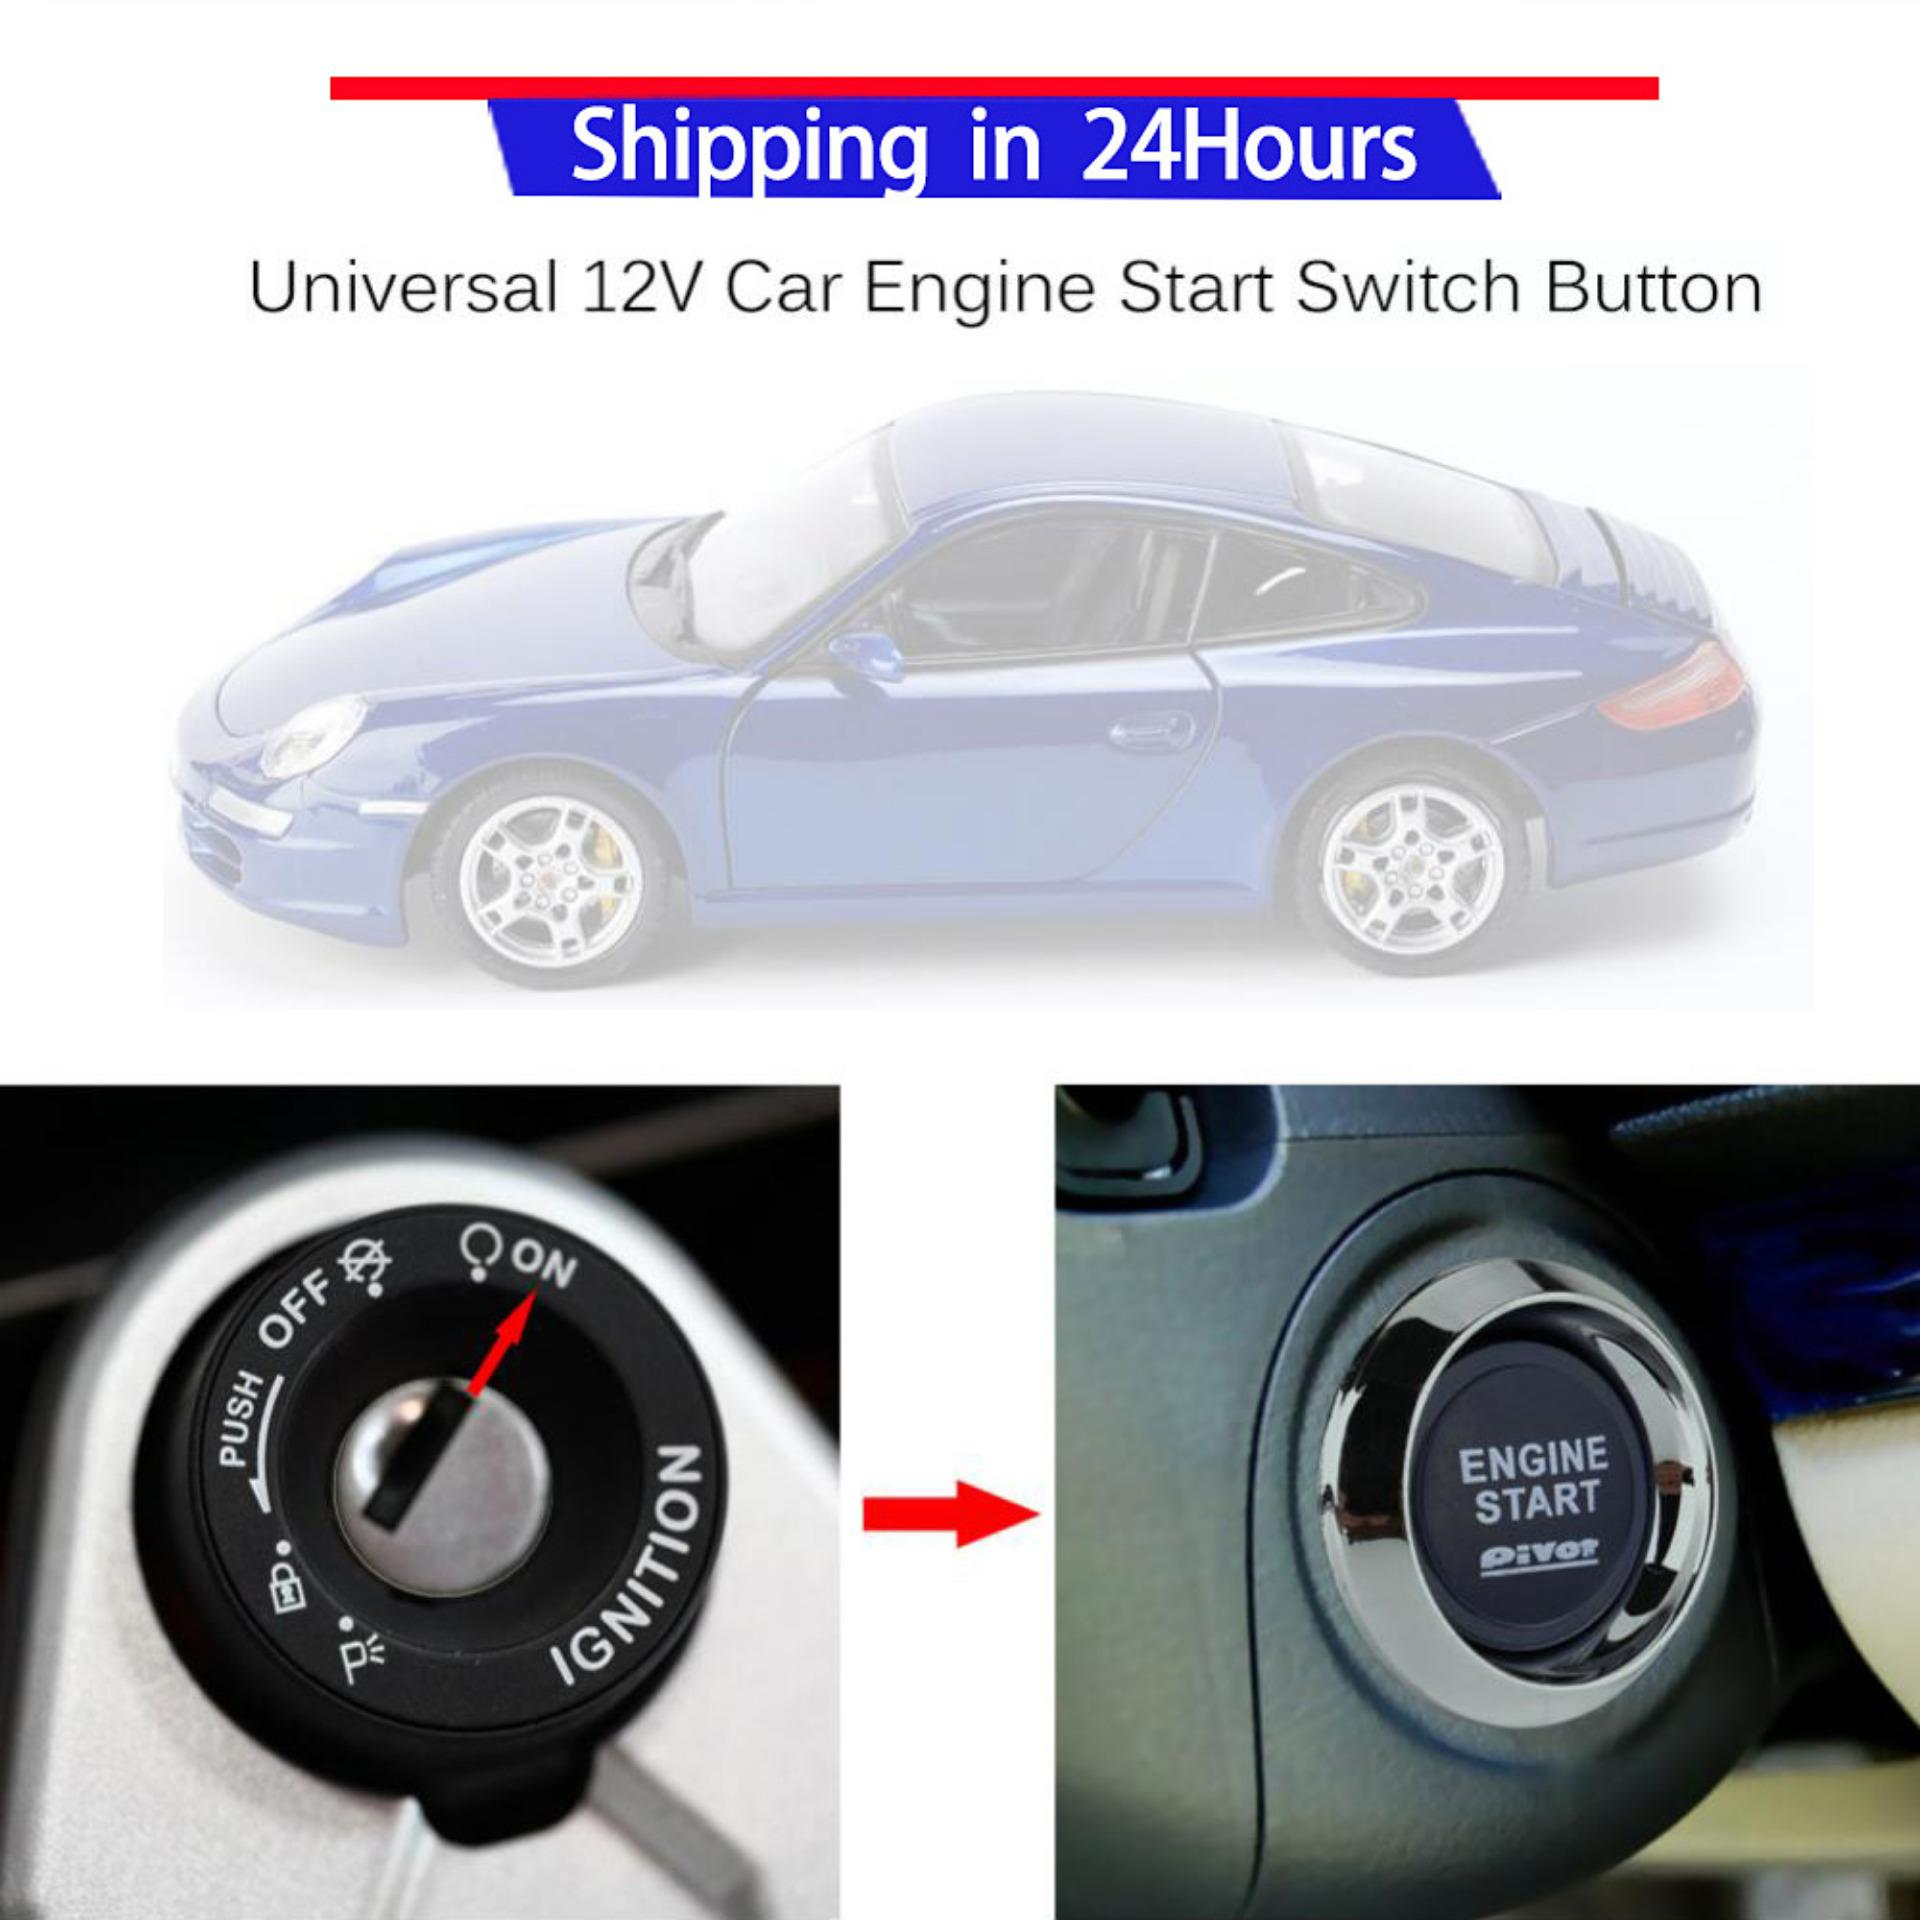 Ignition System For Sale Electronic Online Brands Prices Car Circuit Capacitor Discharge Sweatbuy Universal 12v Vehicle Engine Start Push Button Switch Starter Blue Led Intl